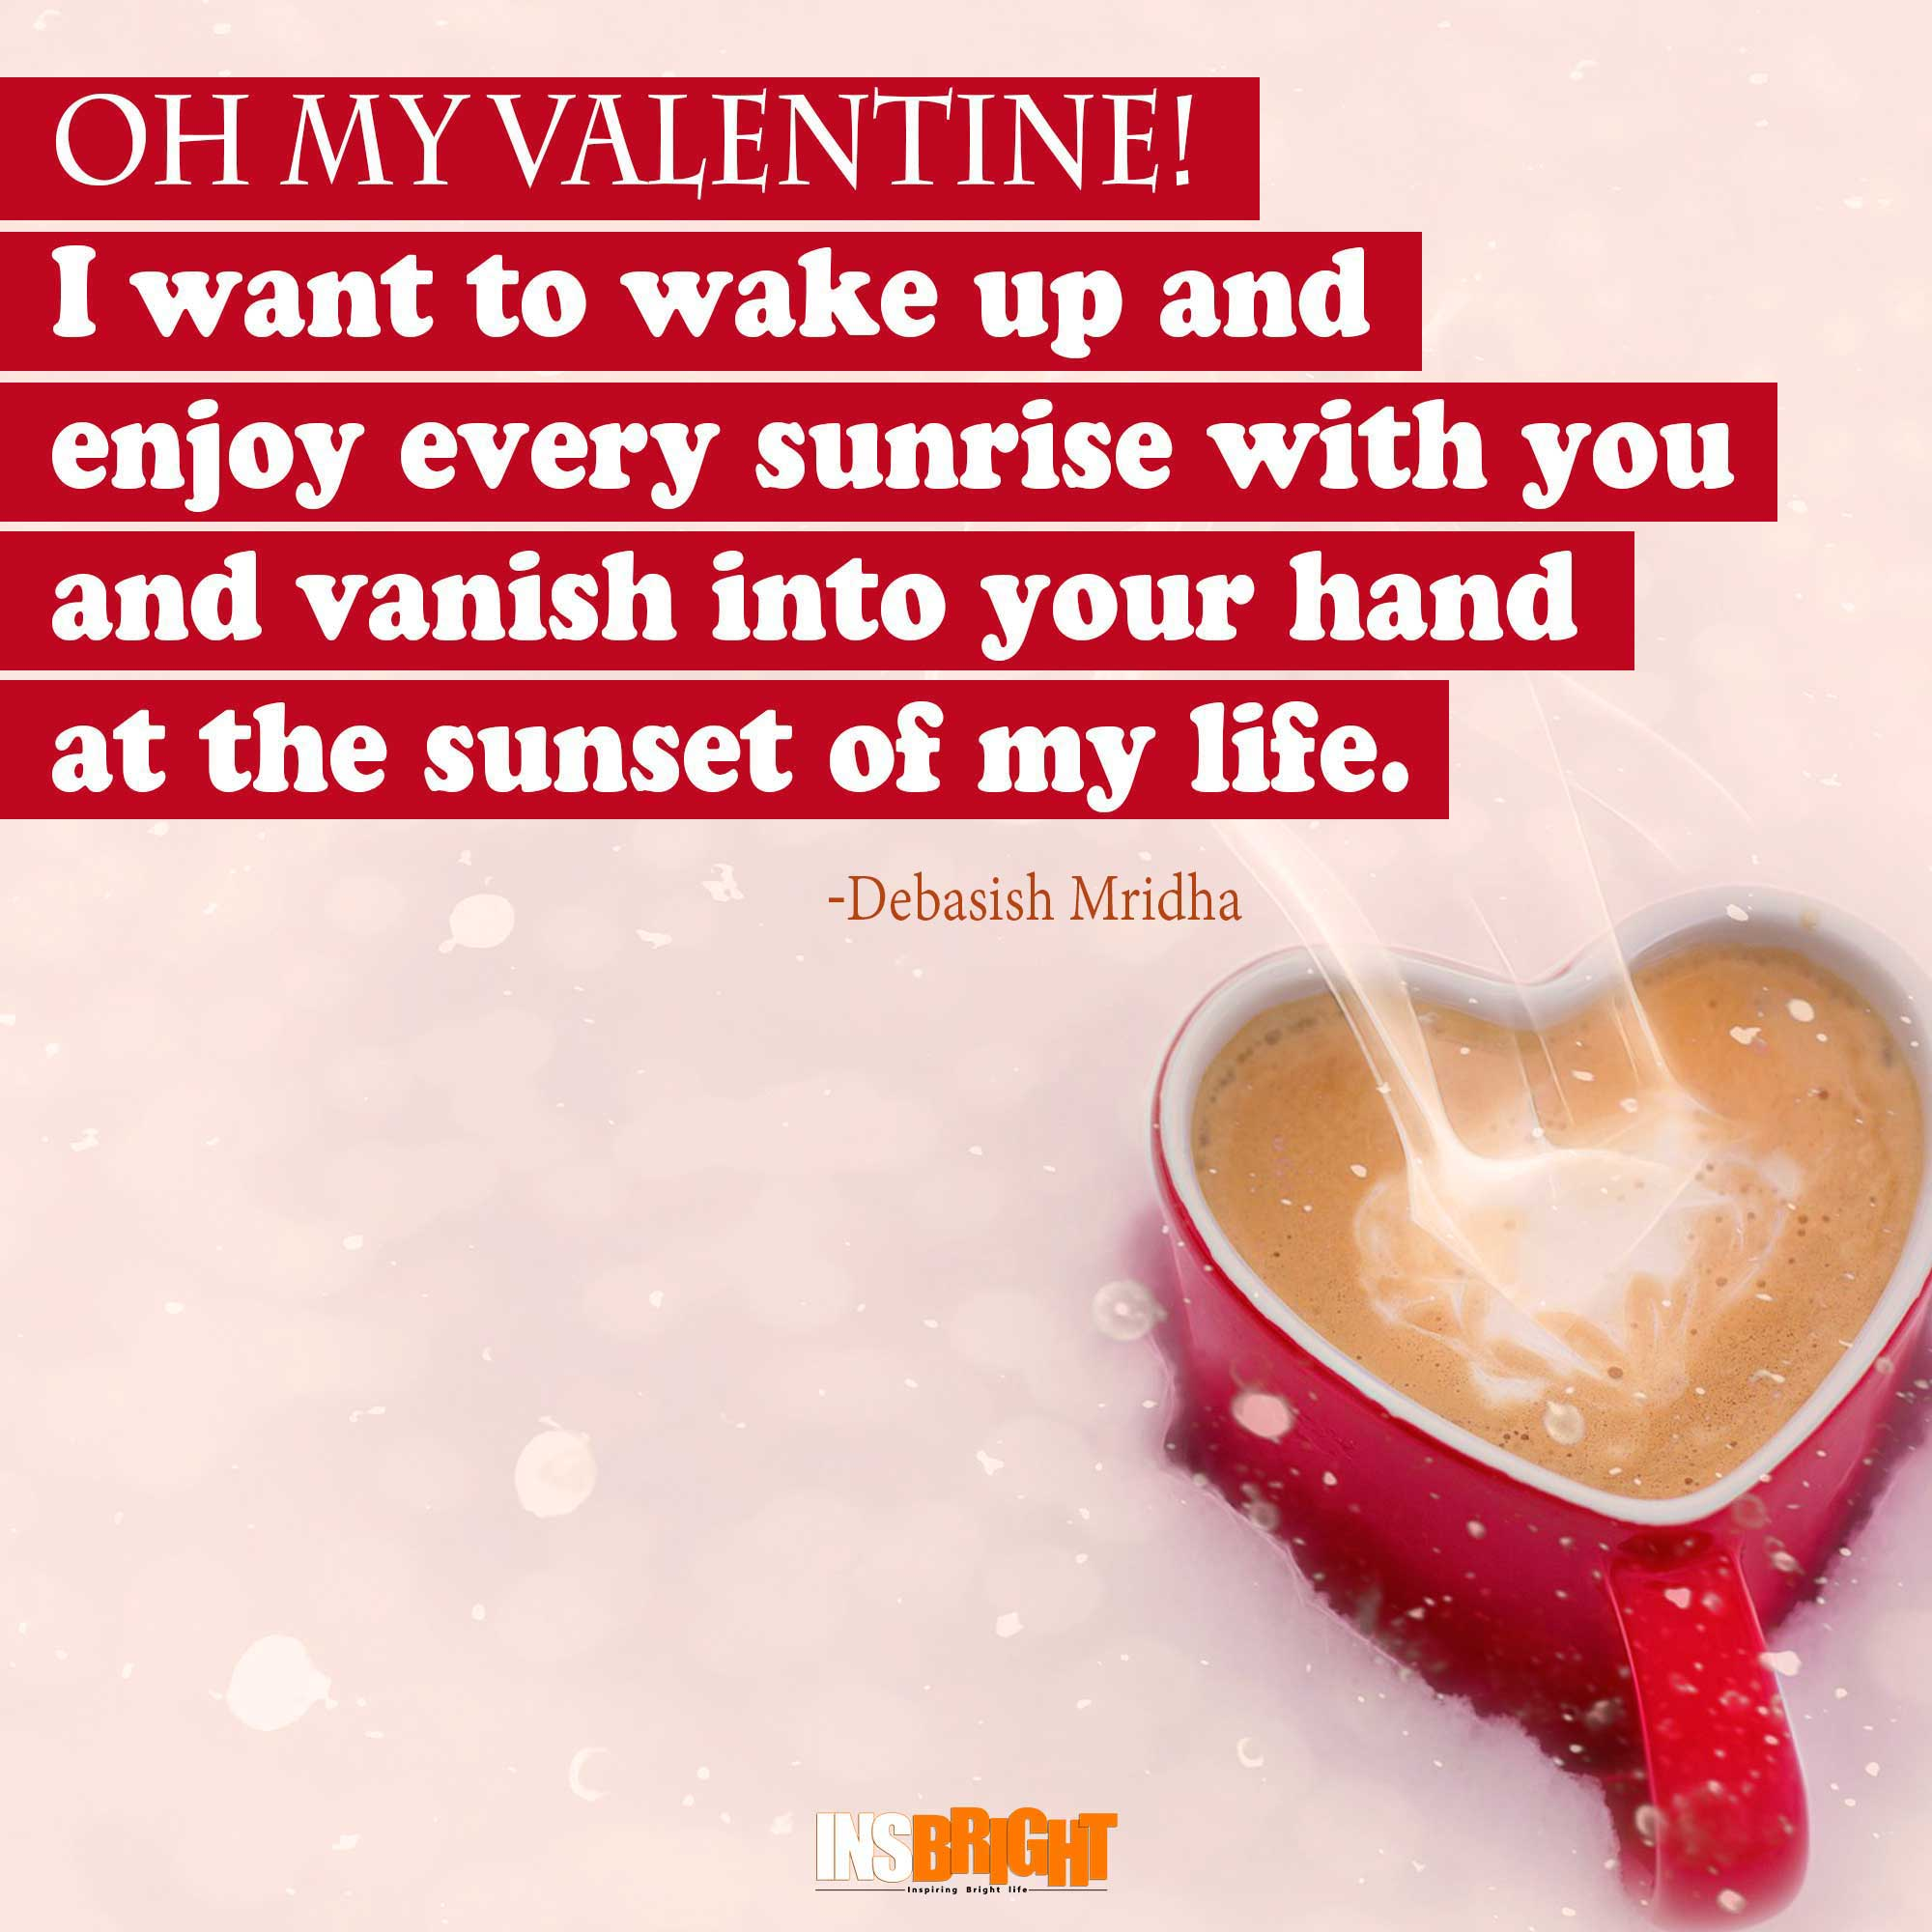 Valentines Day Quotes For Him Cute Happy Valentines Day Quotes With Images For Him Or Her Or